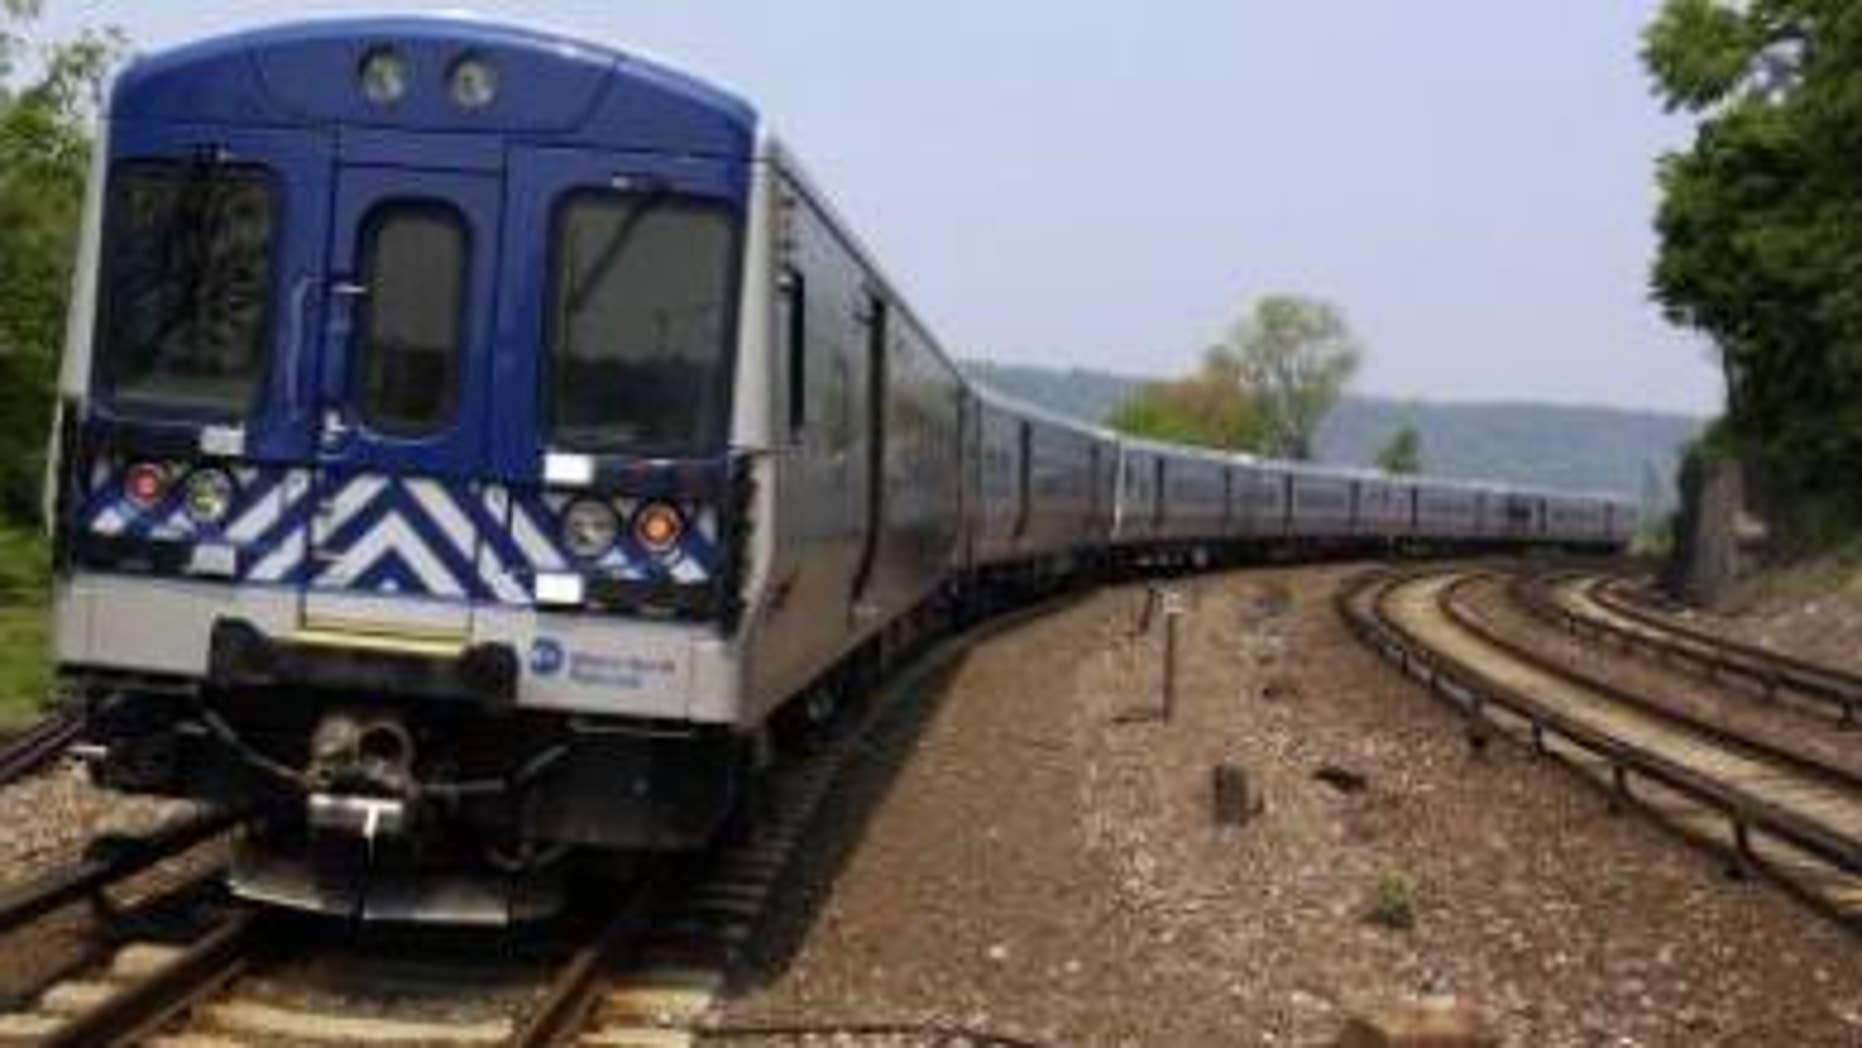 Metro-North riders claim they were delayed more than two hours after a passenger climbed atop a train and got electrocuted.